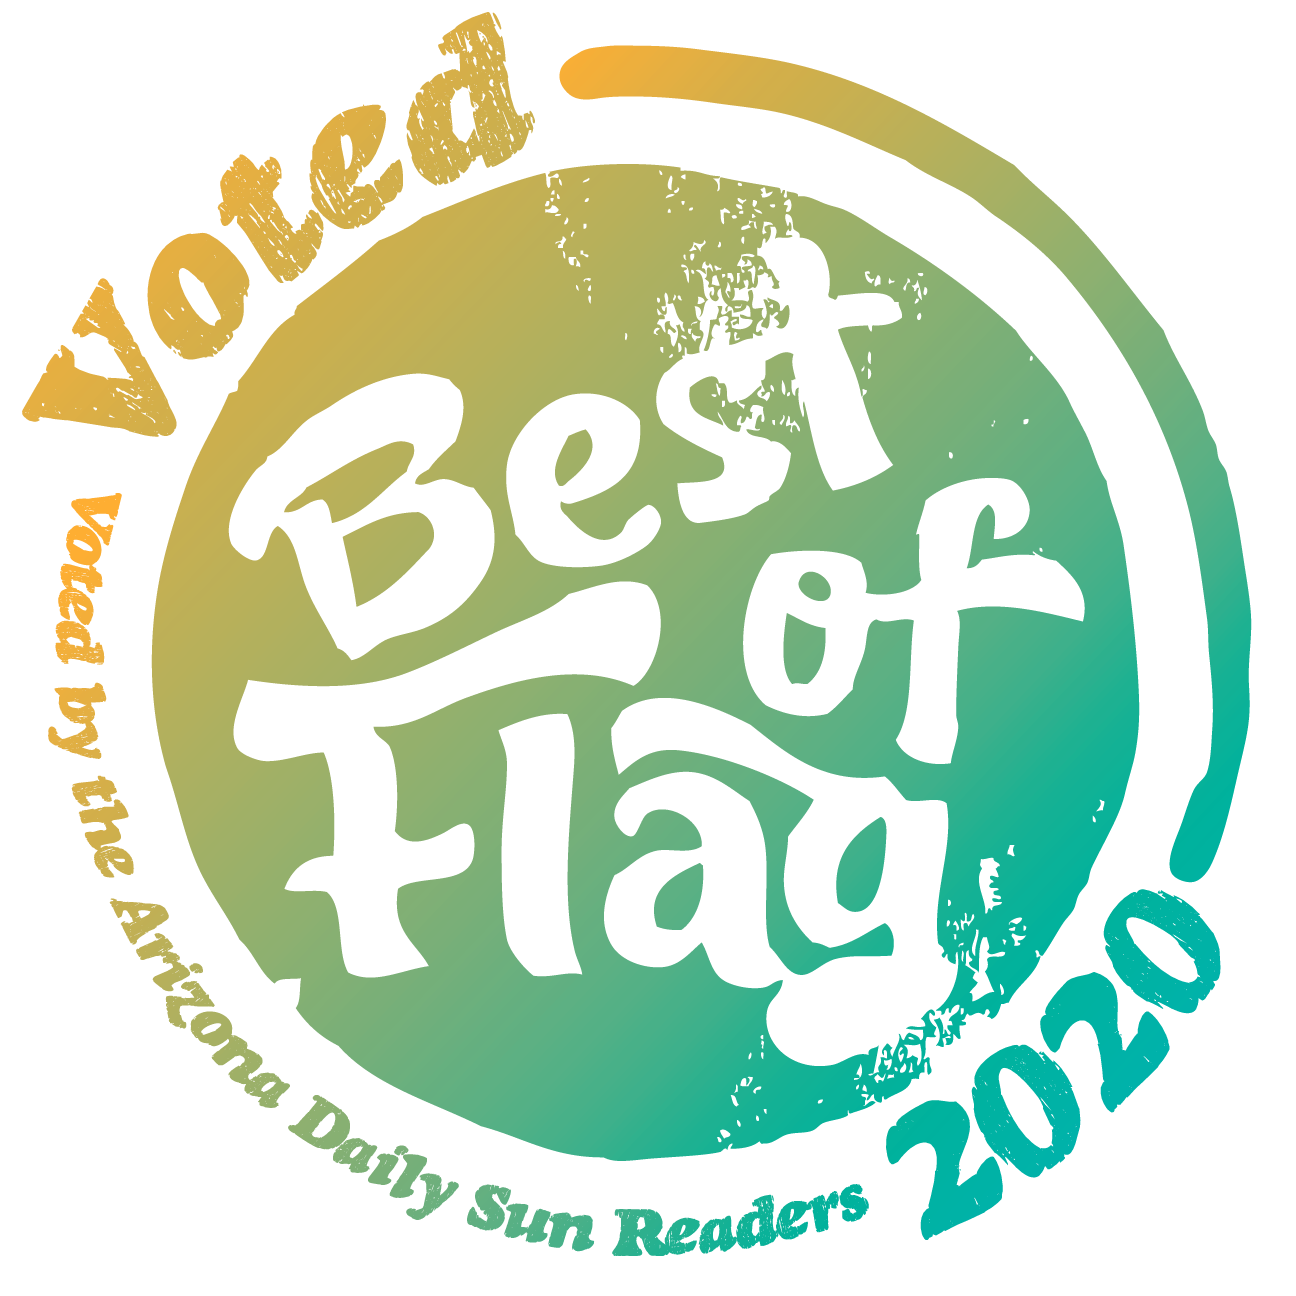 Voted Best of Flag 2020